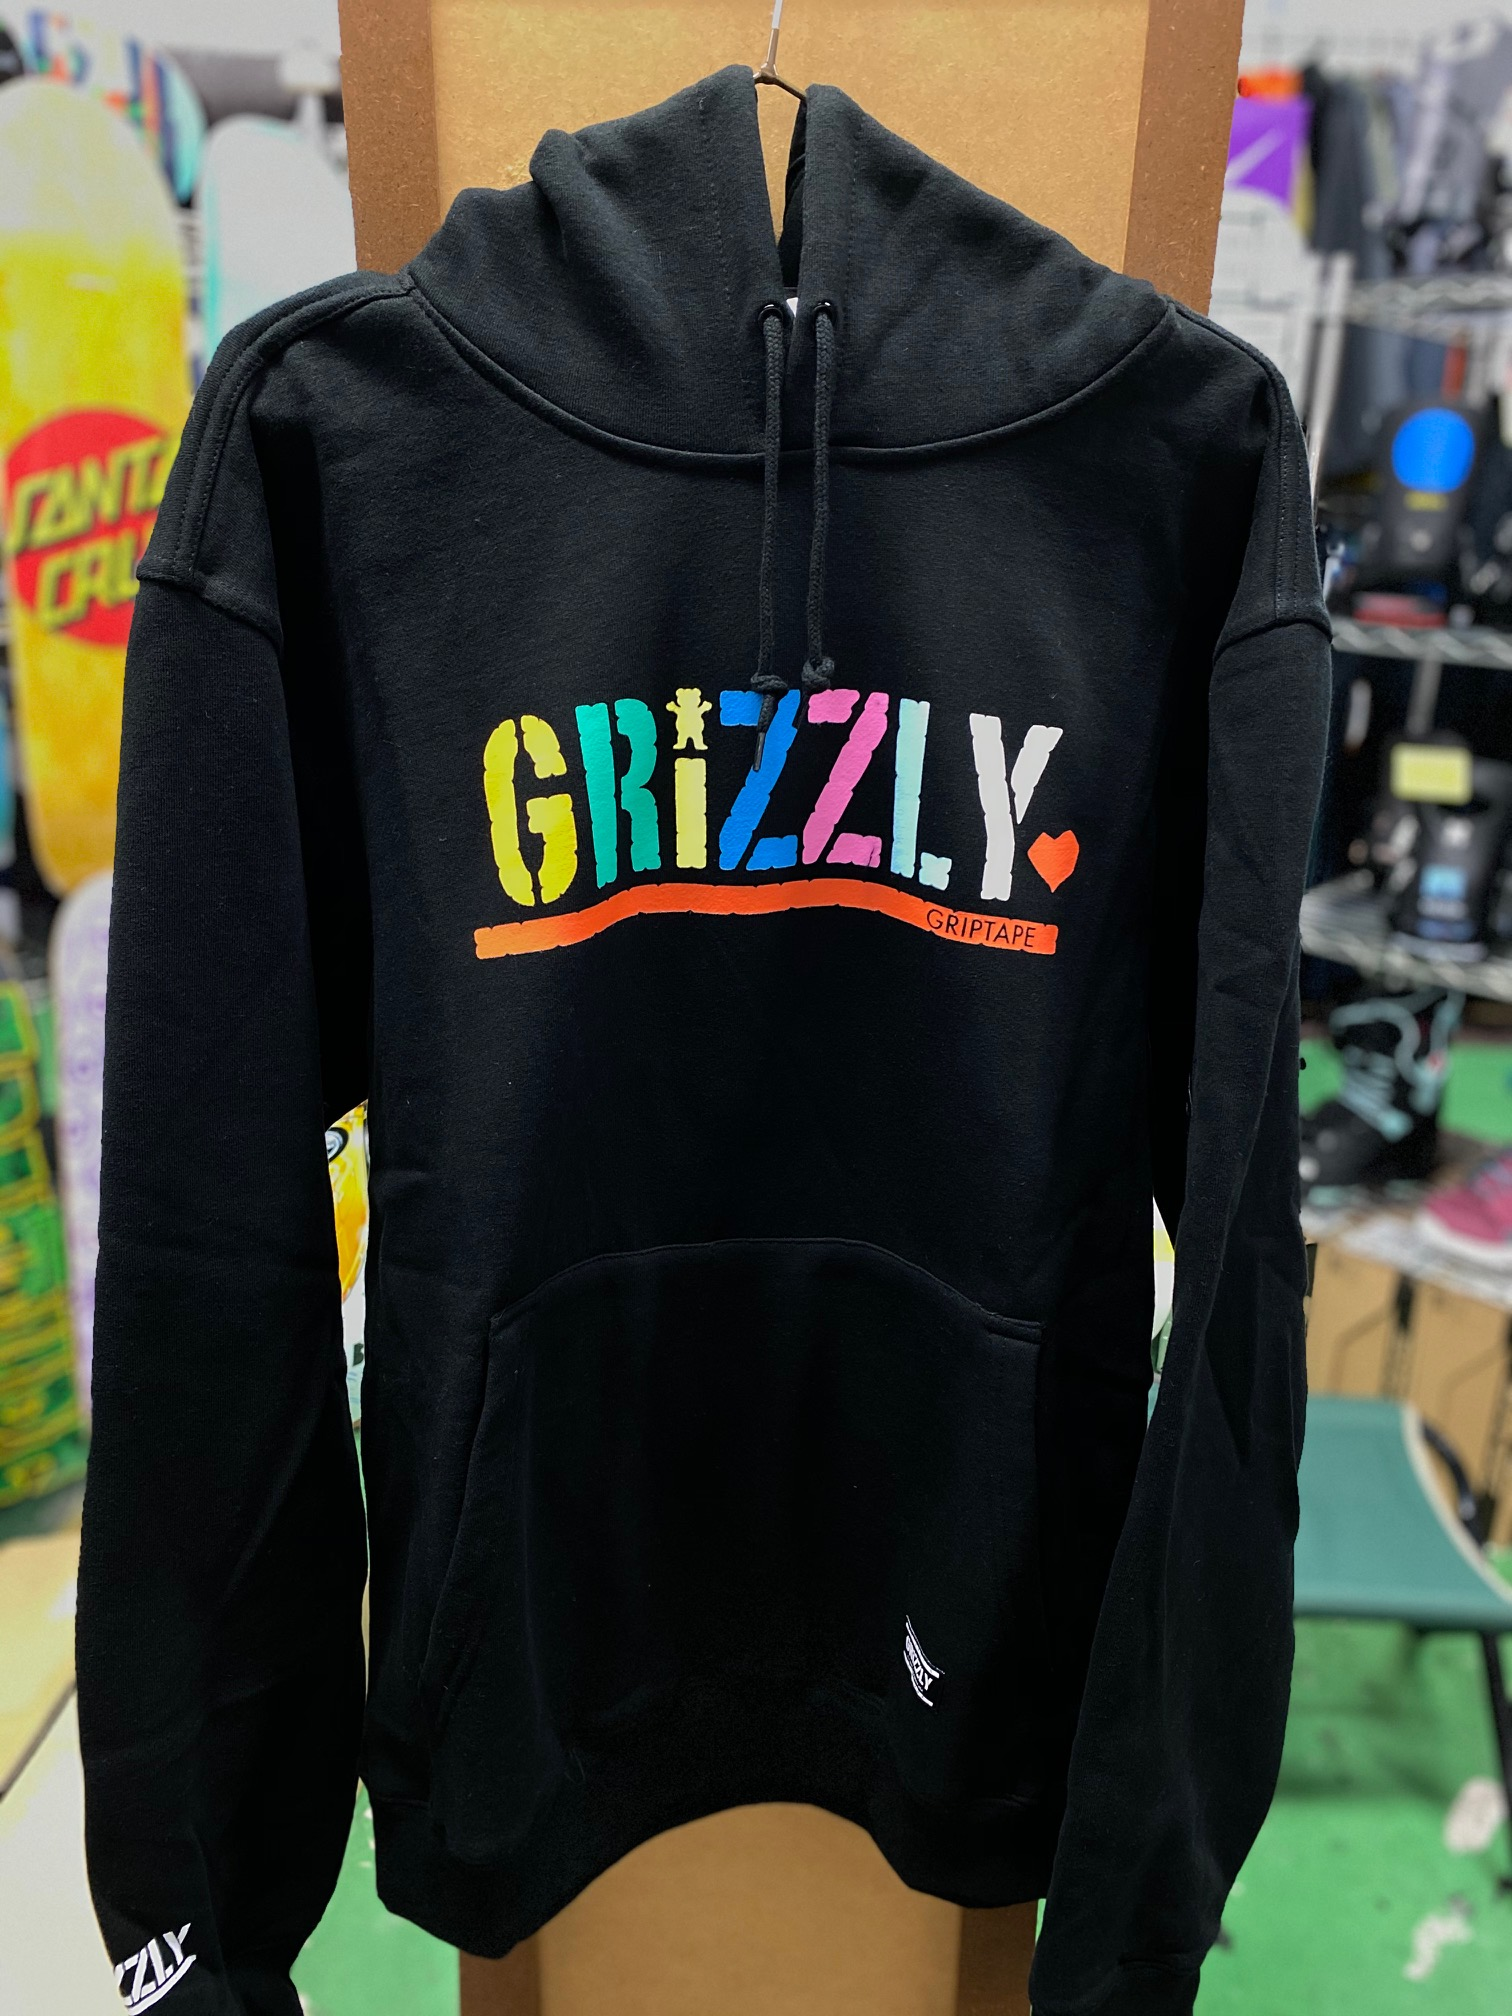 GRIZZLY 2020FALL 入荷しました!!